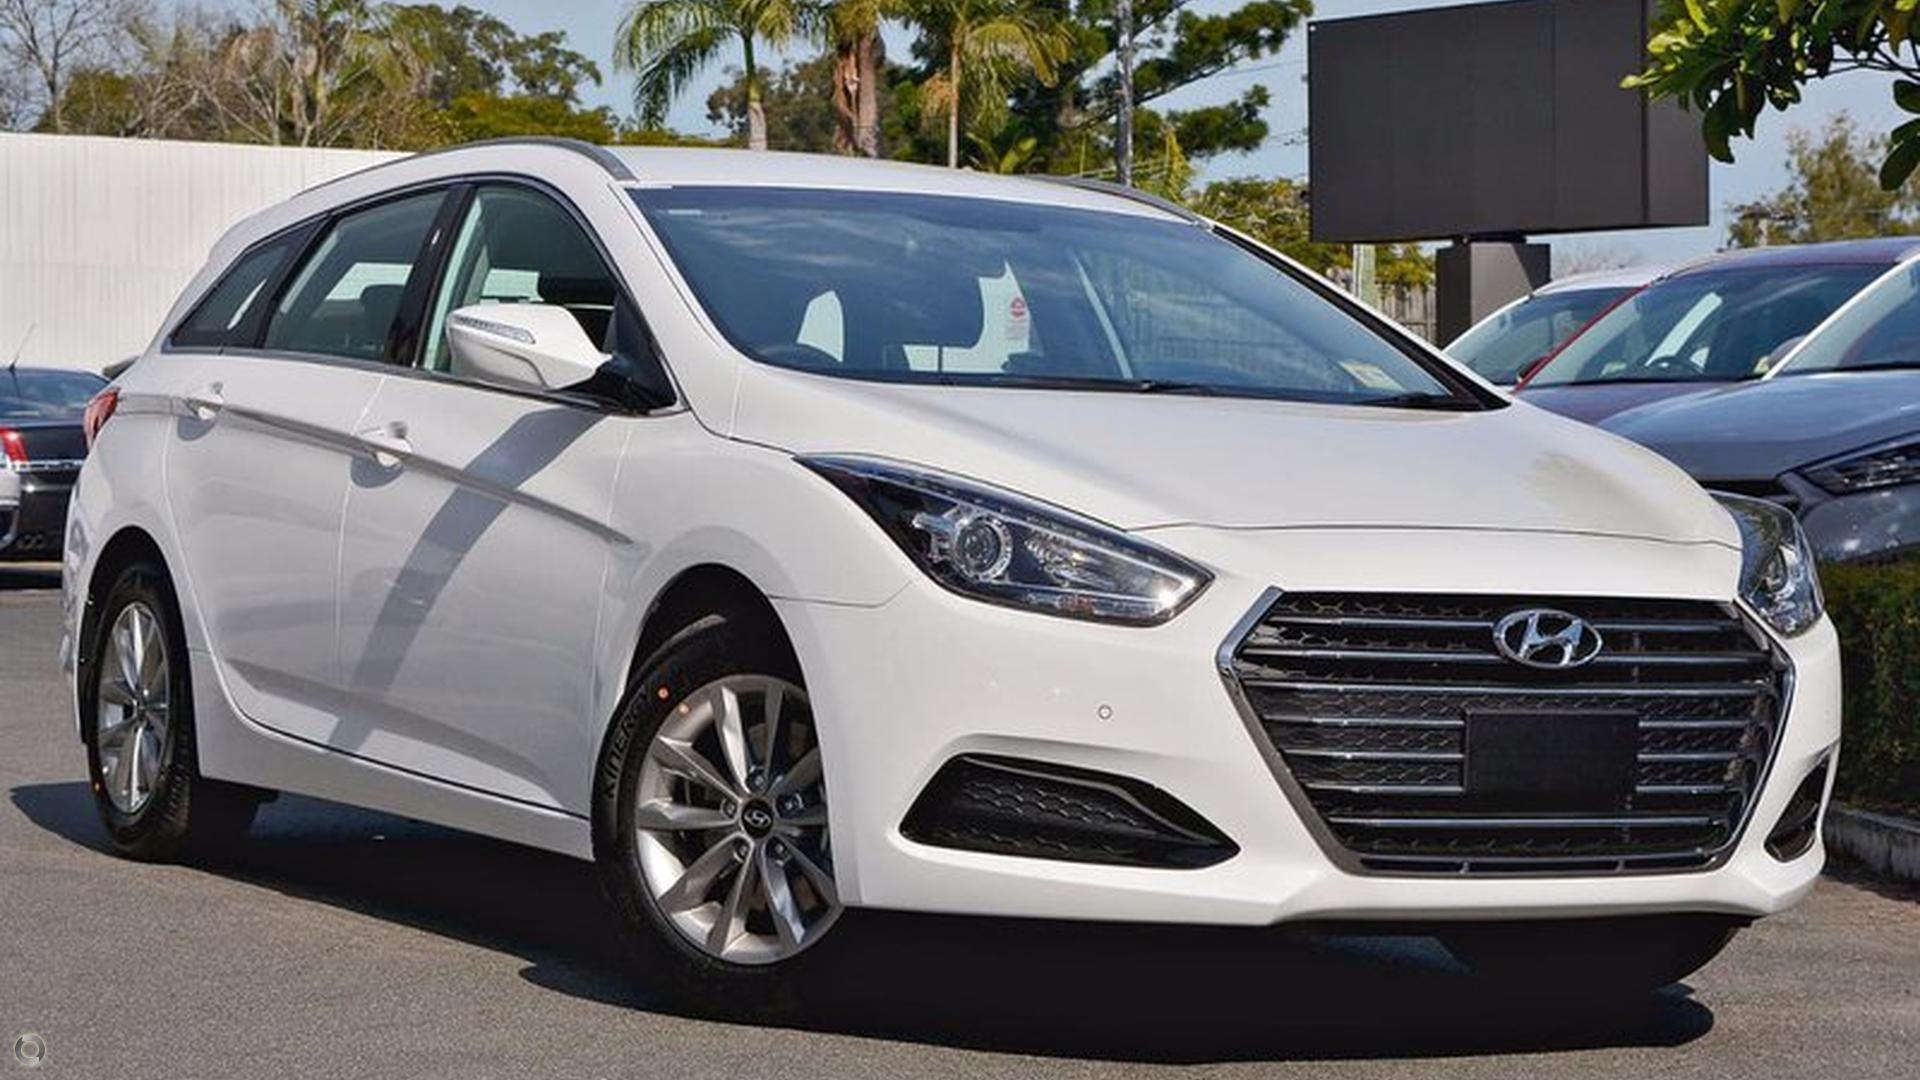 2018 Hyundai i40 Active VF4 Series II